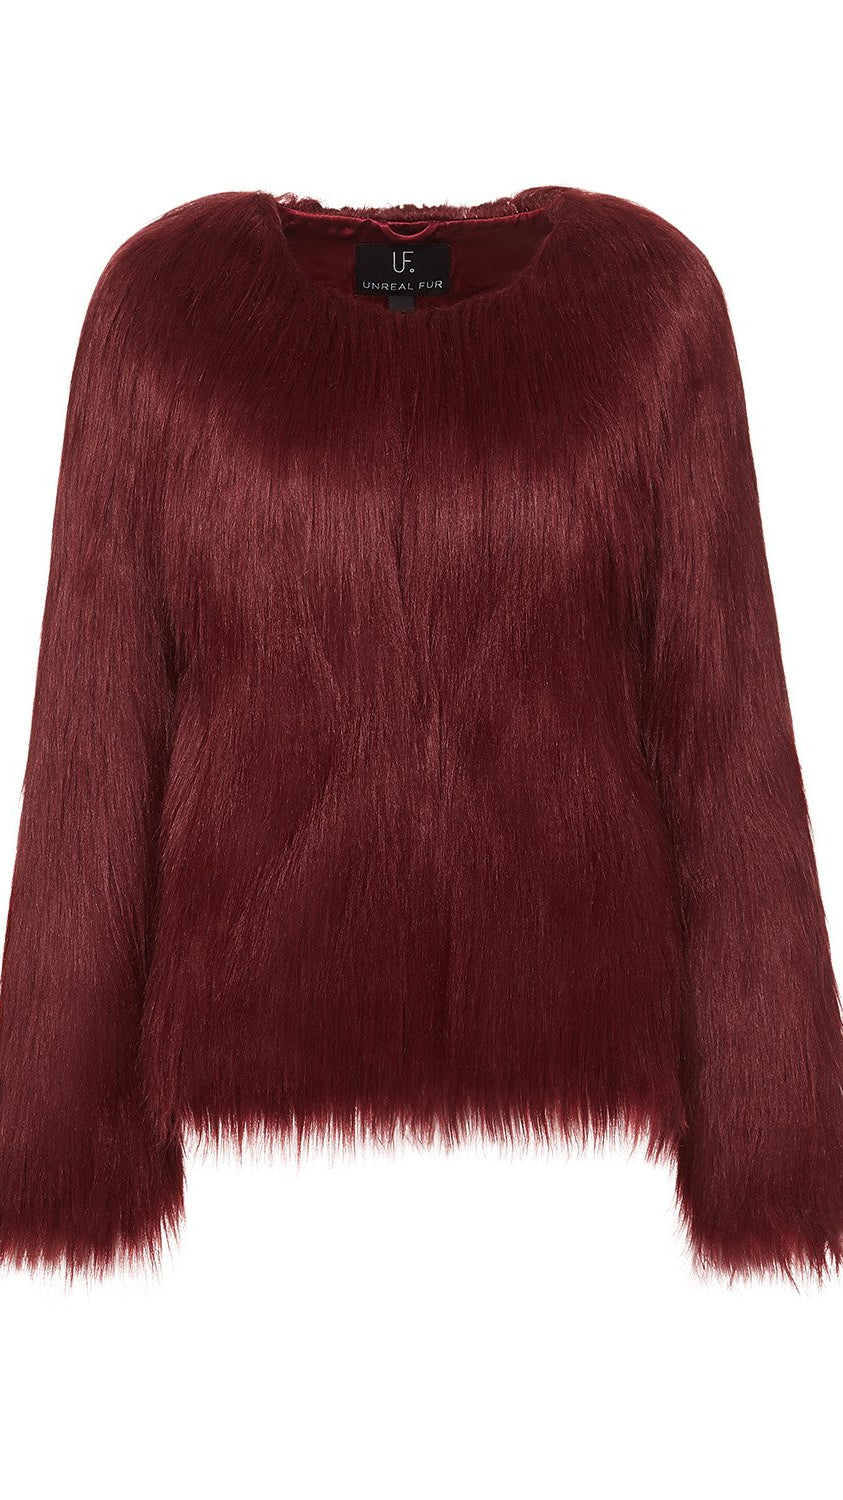 Unreal Dream Faux Fur Jacket in Burgundy by Unreal Fur